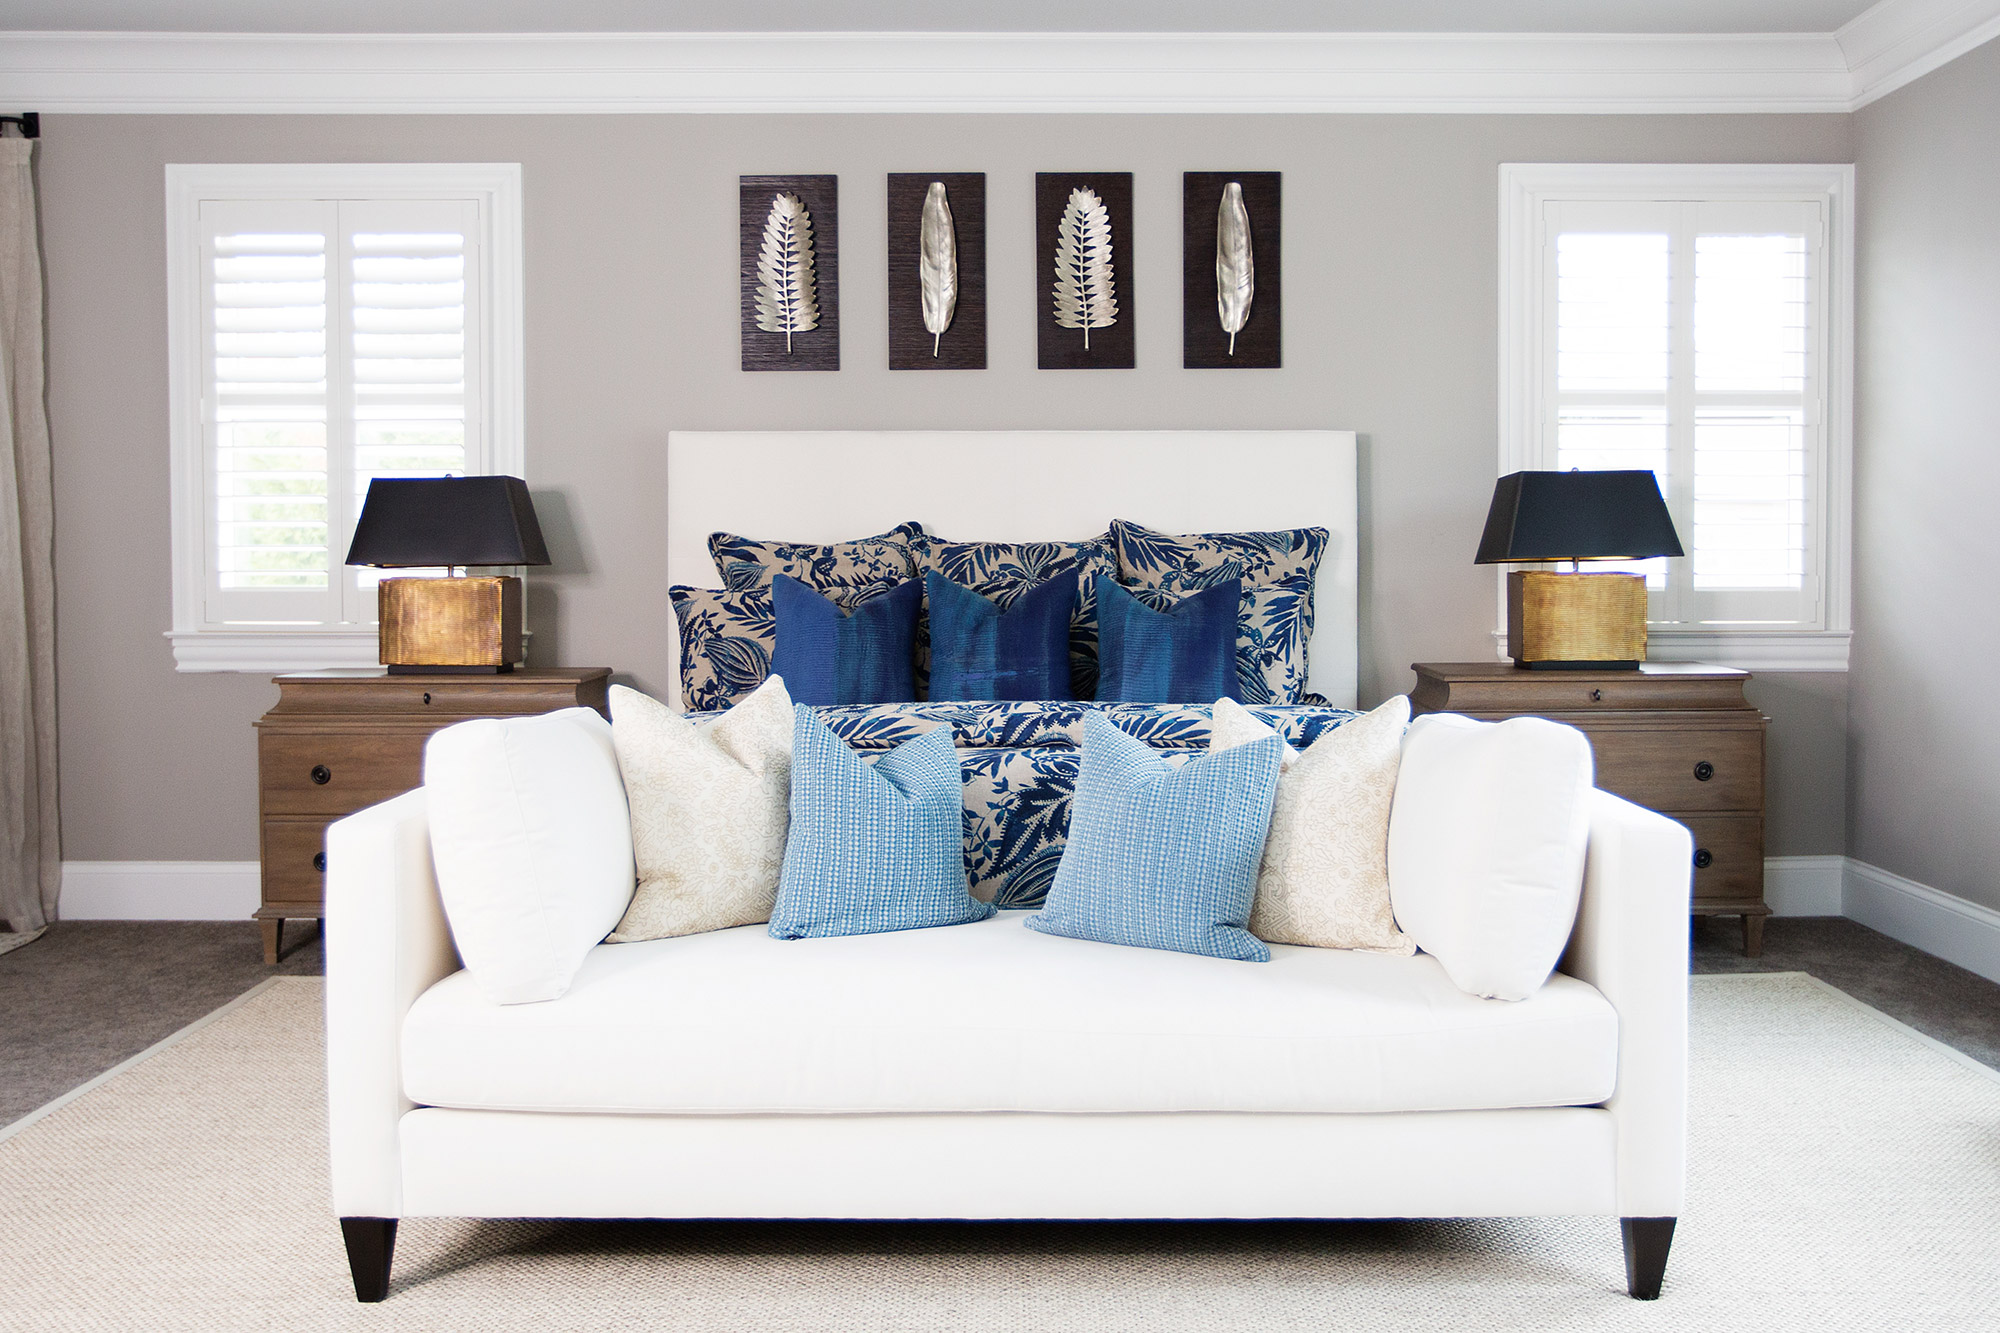 Transitional master bedroom with white upholstered bed frame and chaise at foot of bed